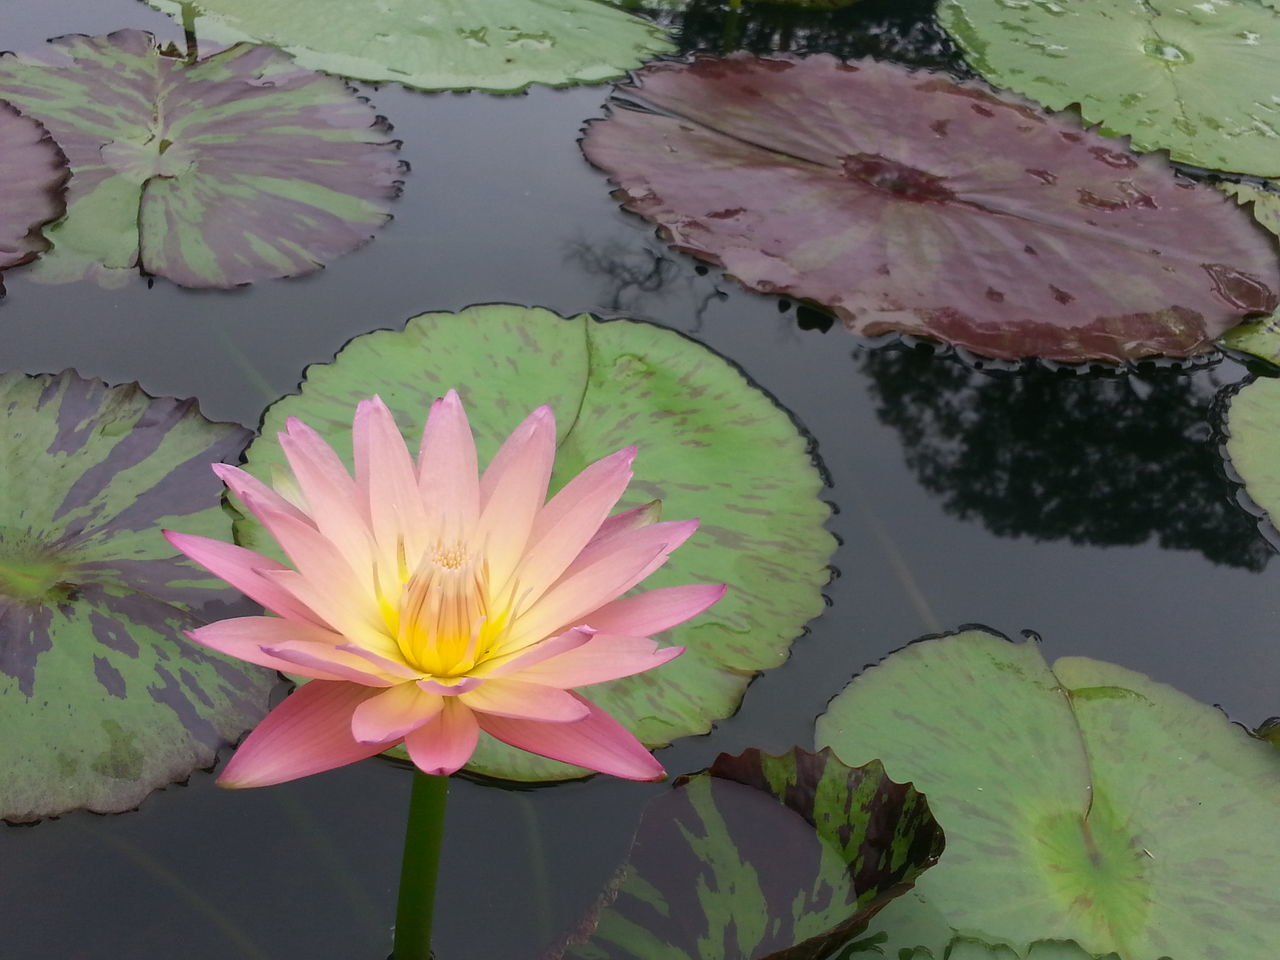 flower, leaf, beauty in nature, water lily, petal, lotus water lily, freshness, nature, flower head, fragility, growth, plant, lily pad, no people, water, lotus, pink color, floating on water, outdoors, day, close-up, blooming, lake